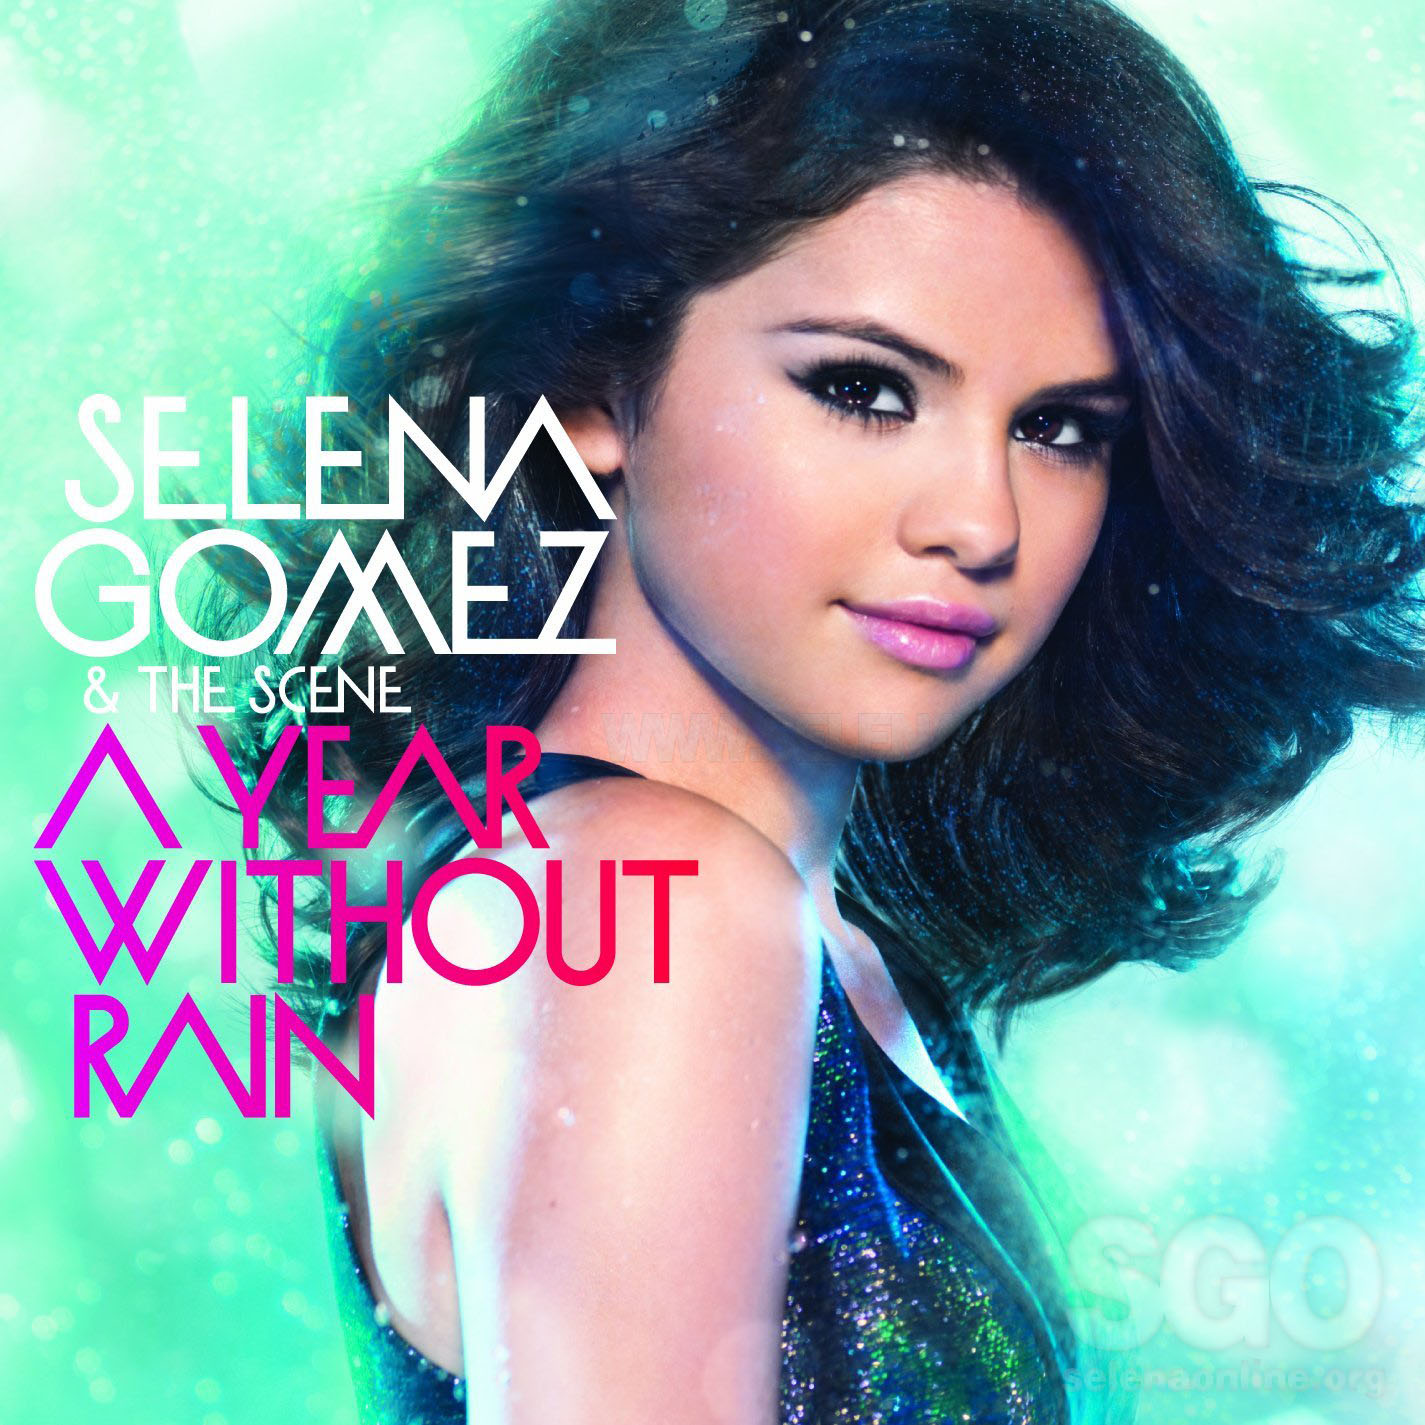 Selena Gomez and the Scene a Year without Rain